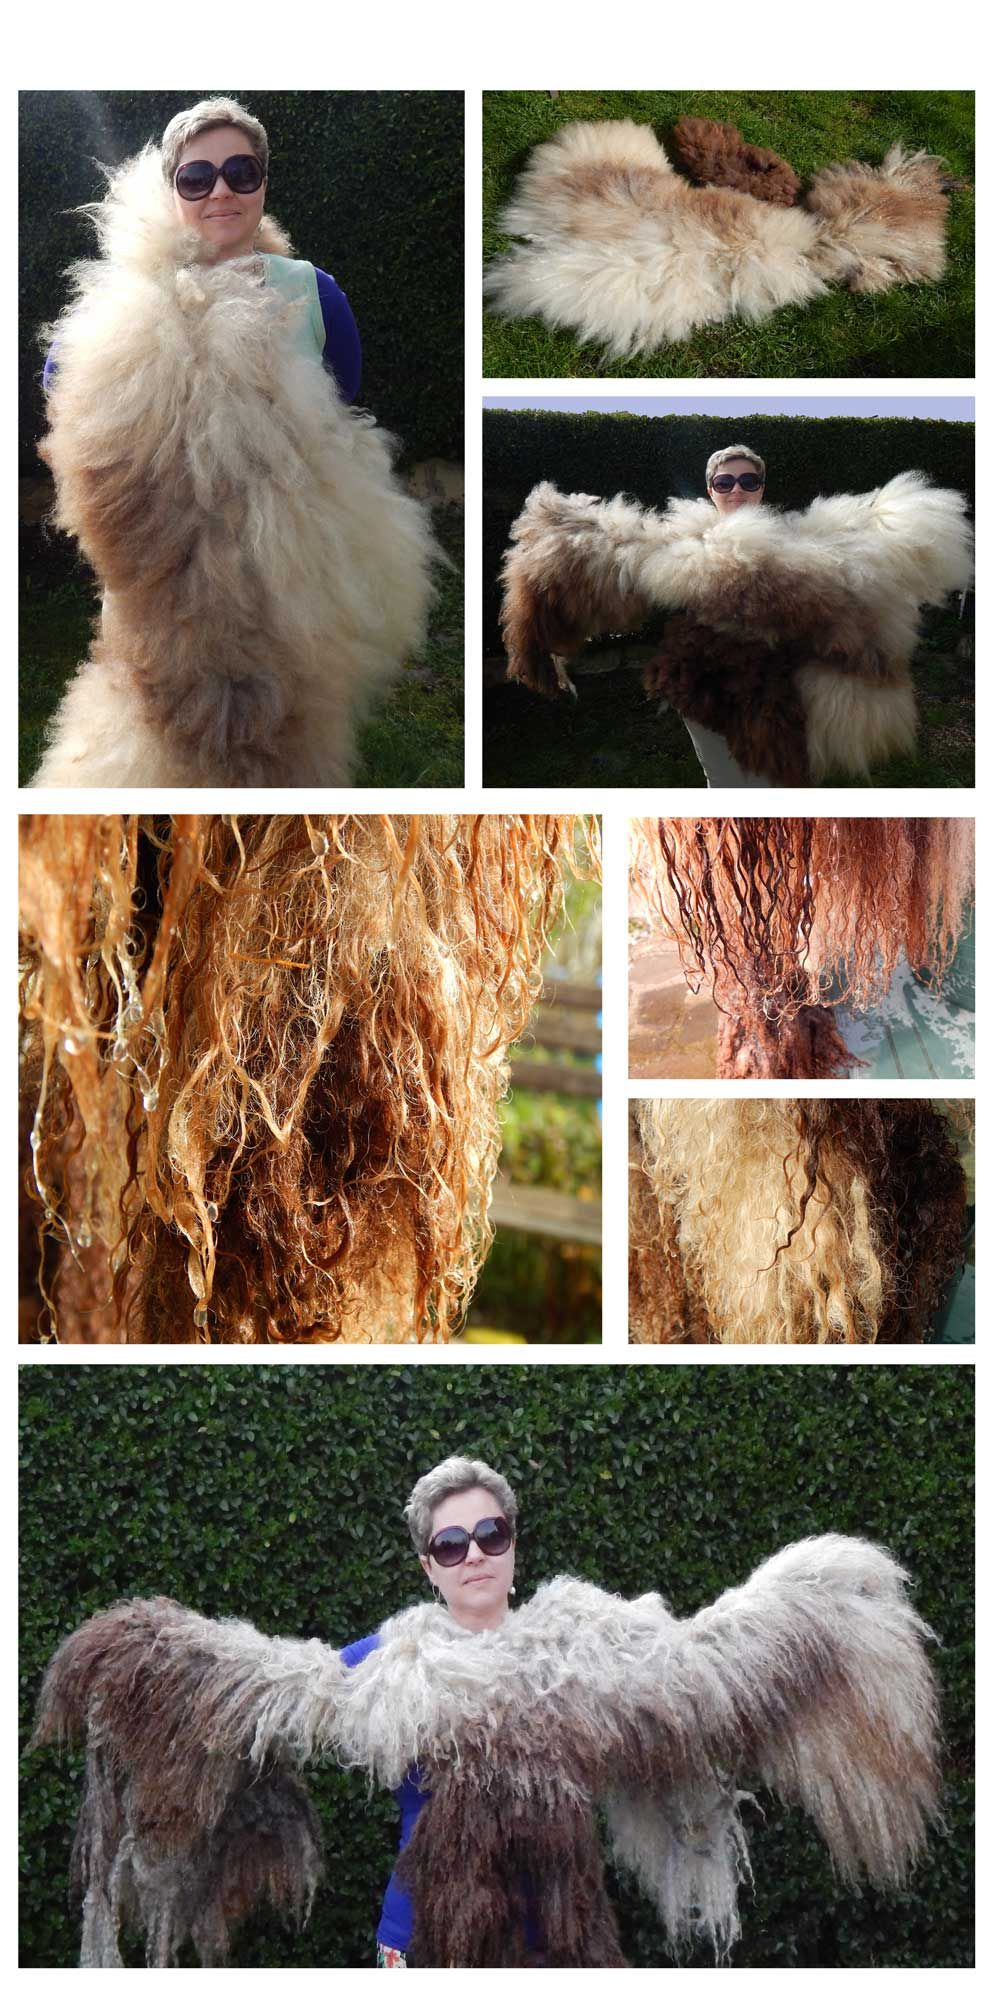 Sunny sunday project. Brushed Leicester longwool fleece with hand carder then wet it thoroughly and dryed